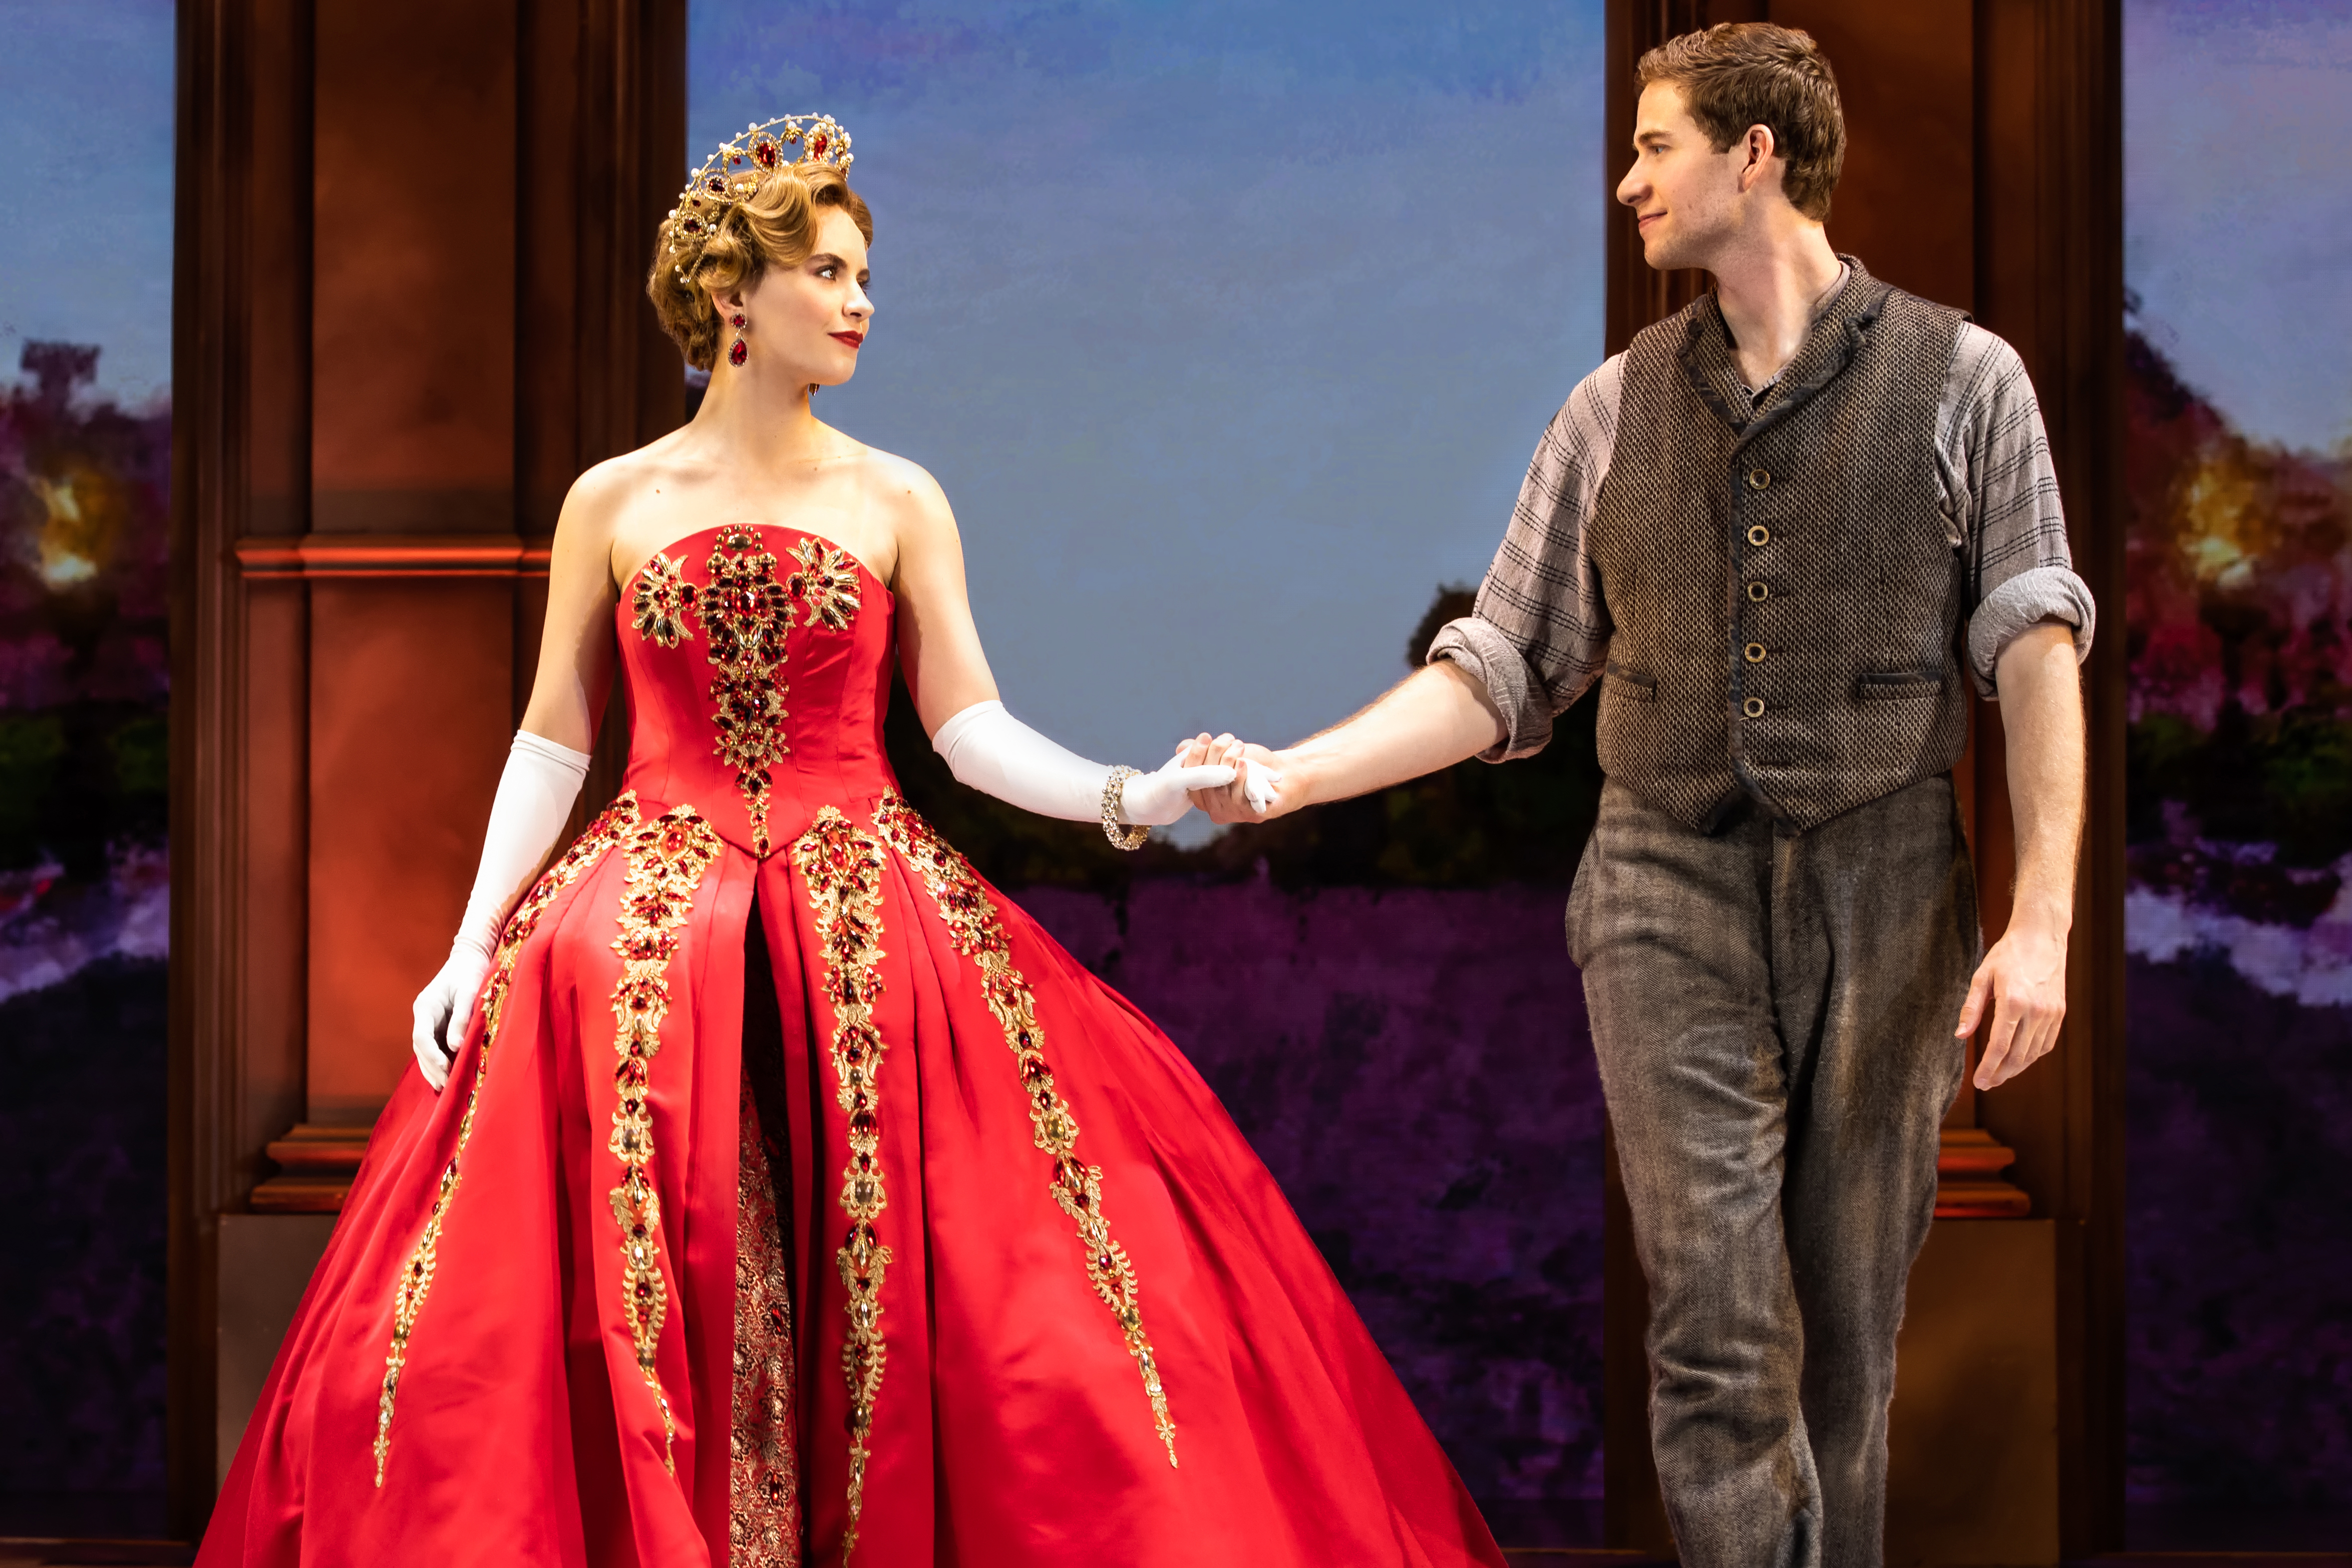 lila-coogan-anya-and-jake-levy-dmitry-in-national-tour-of-anastasia.-photo-by-evan-zimmerman-murphymade